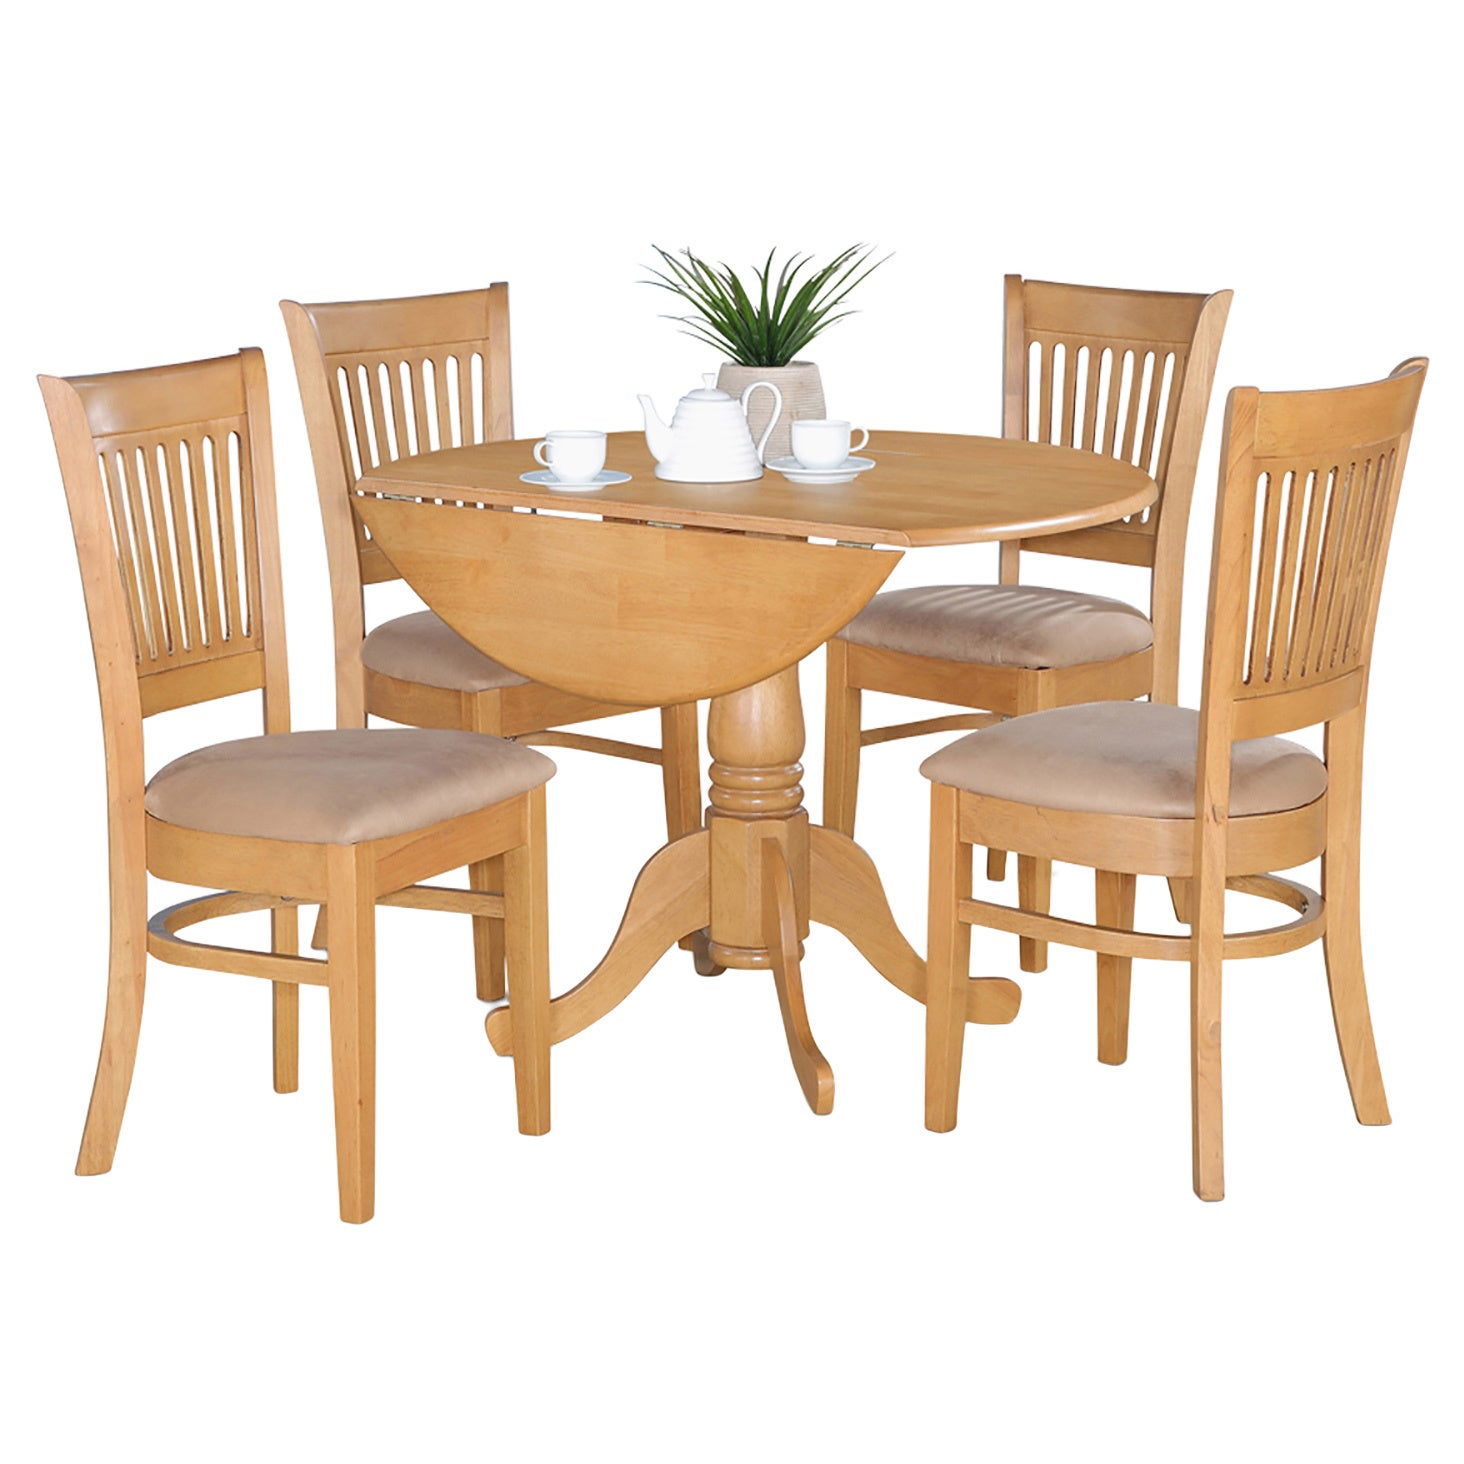 Shop Oak Drop Leaf Table and 4 Dinette Chairs 5-piece ...